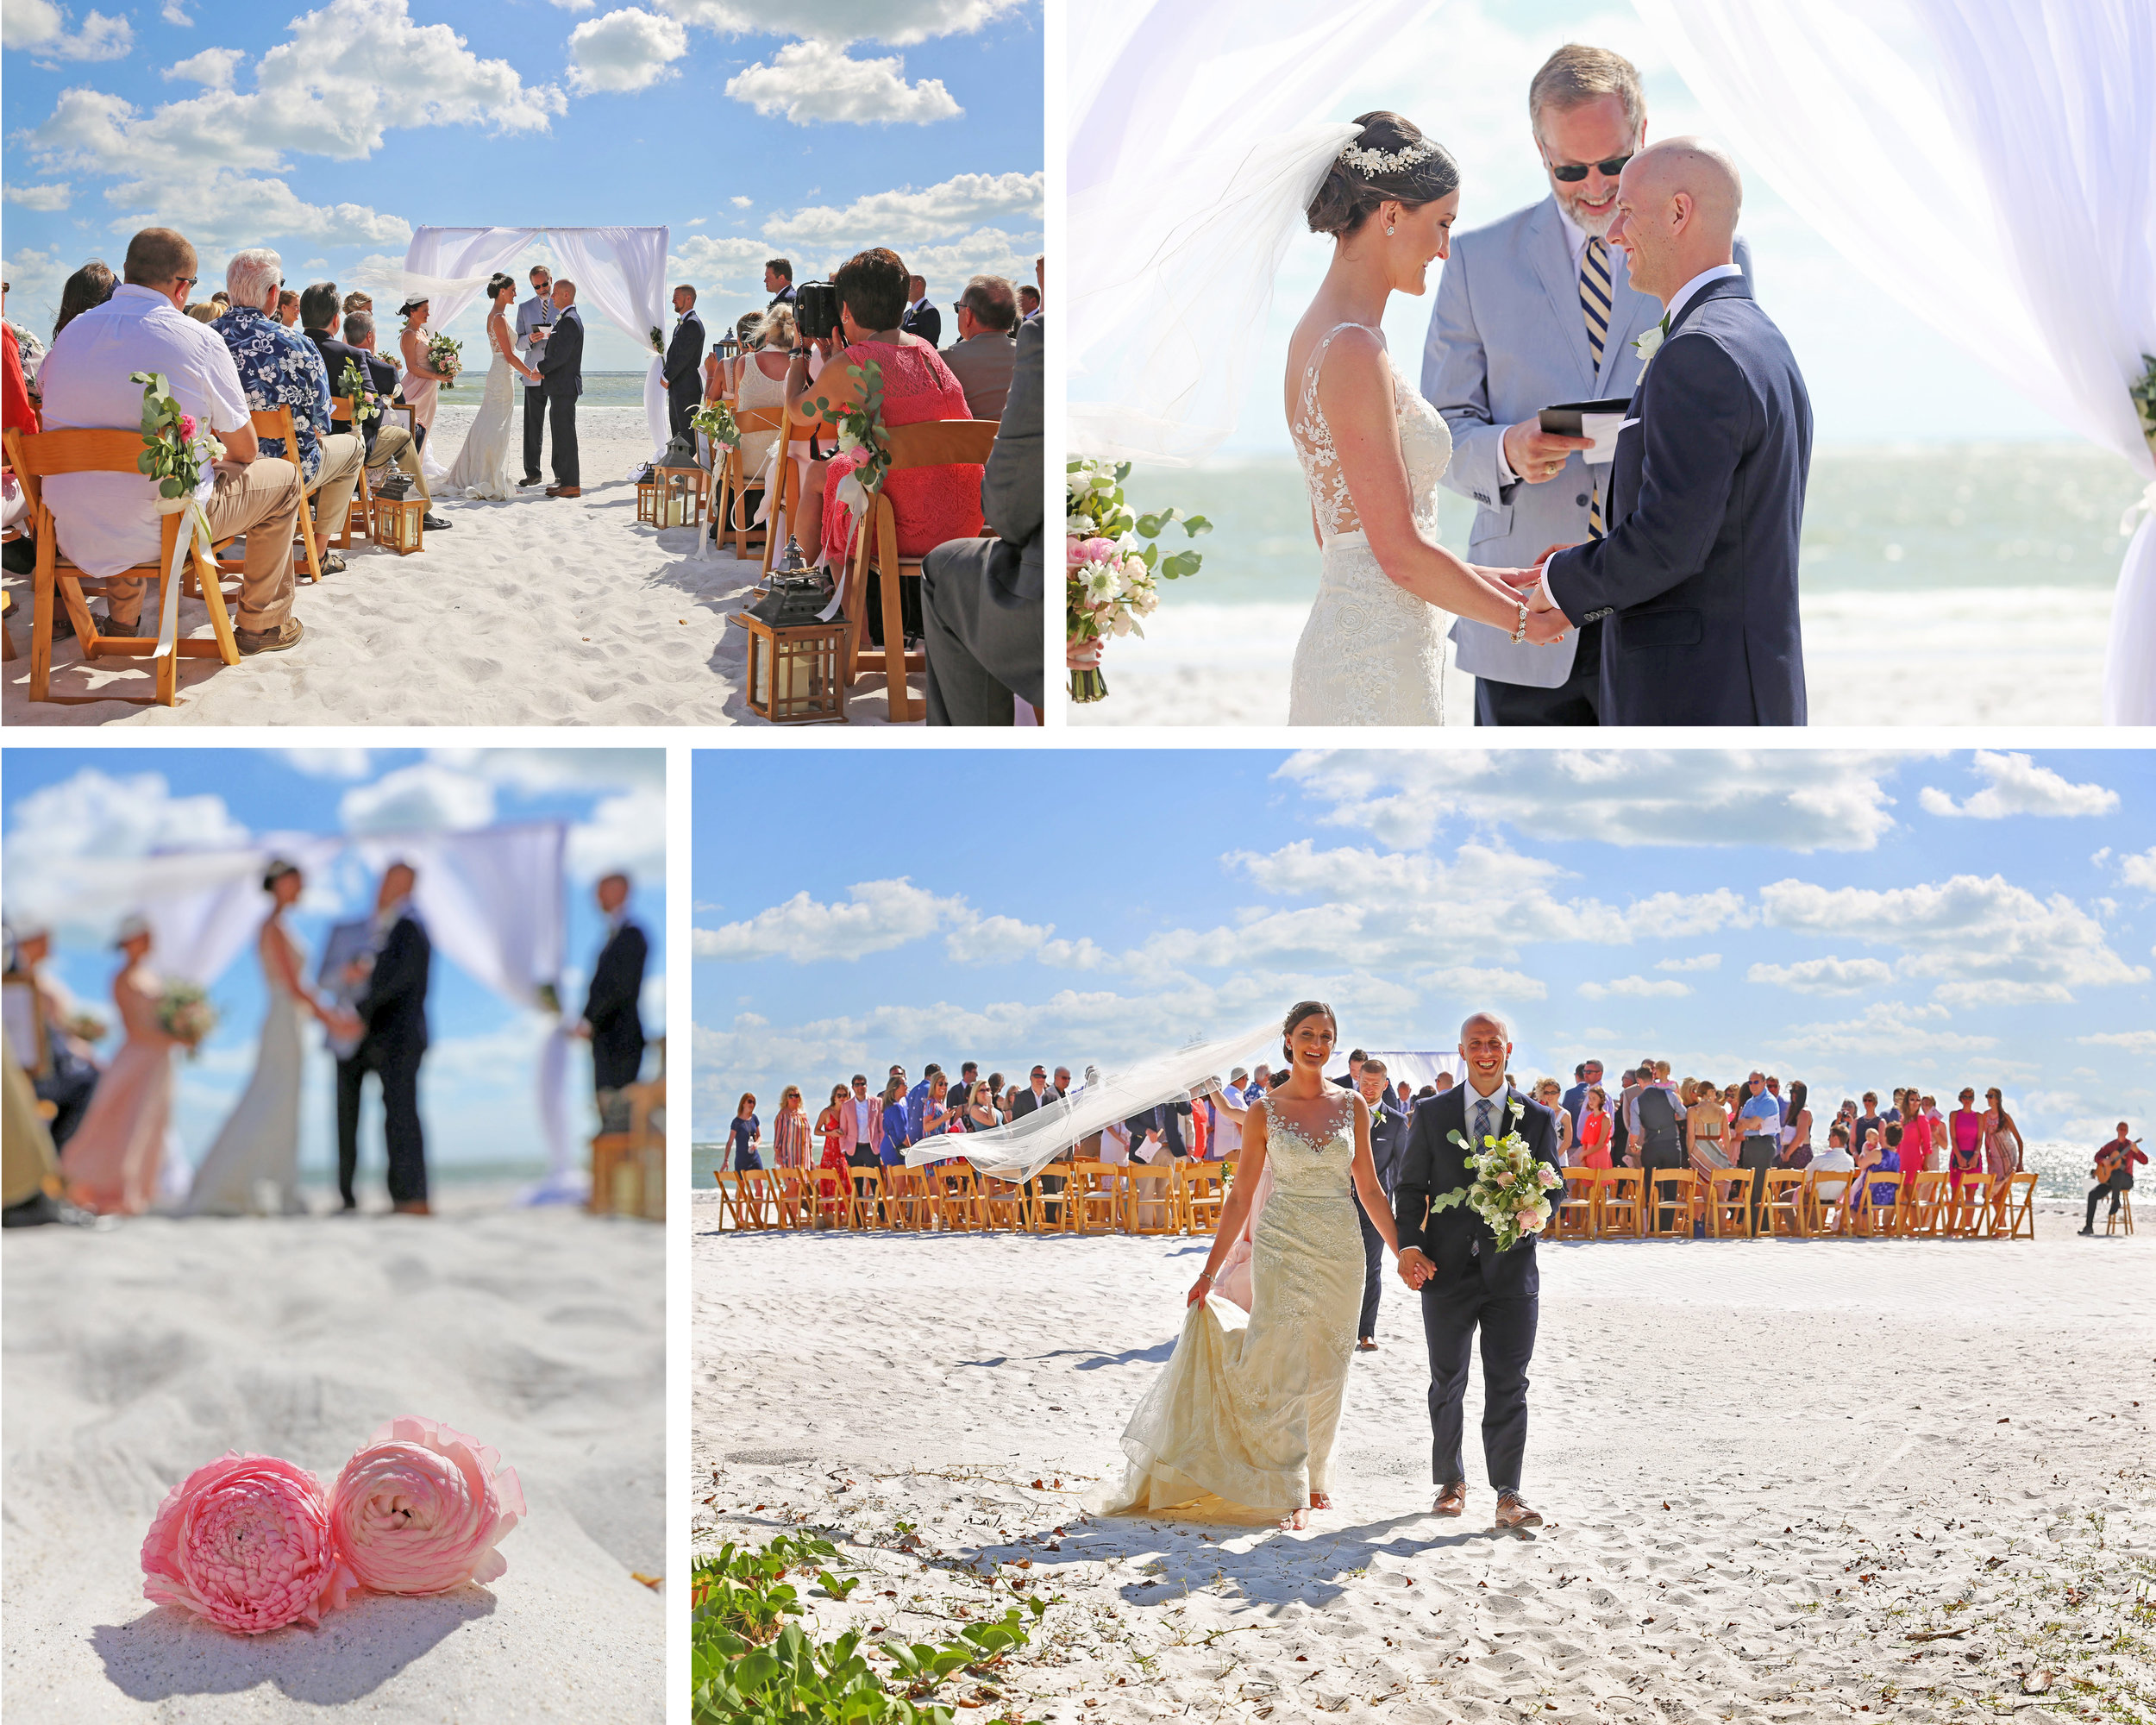 Everyone sat beneath a blue sky and fluffy white clouds during this gorgeous beach ceremony.